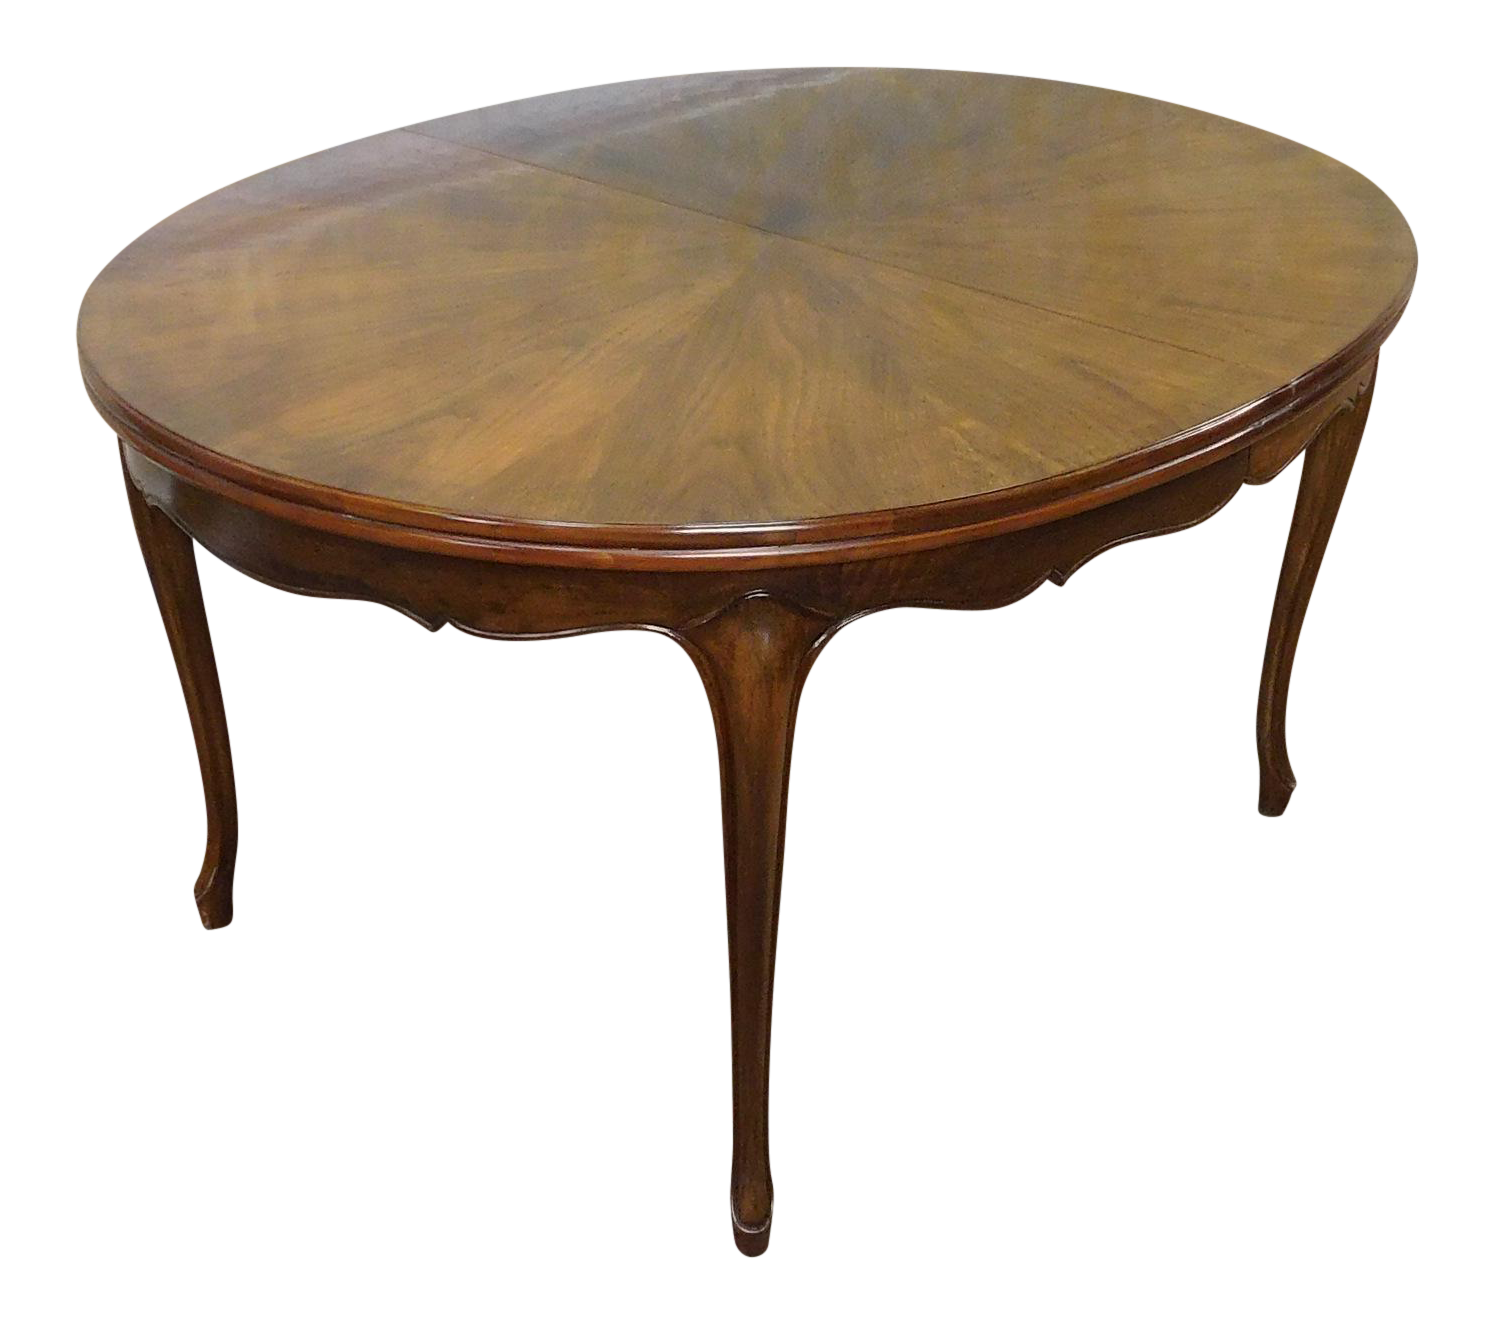 Fruitwood Cherry Oval French Provincial Style Baker Furniture Dining Table    Chairish. Fruitwood Cherry Oval French Provincial Style Baker Furniture